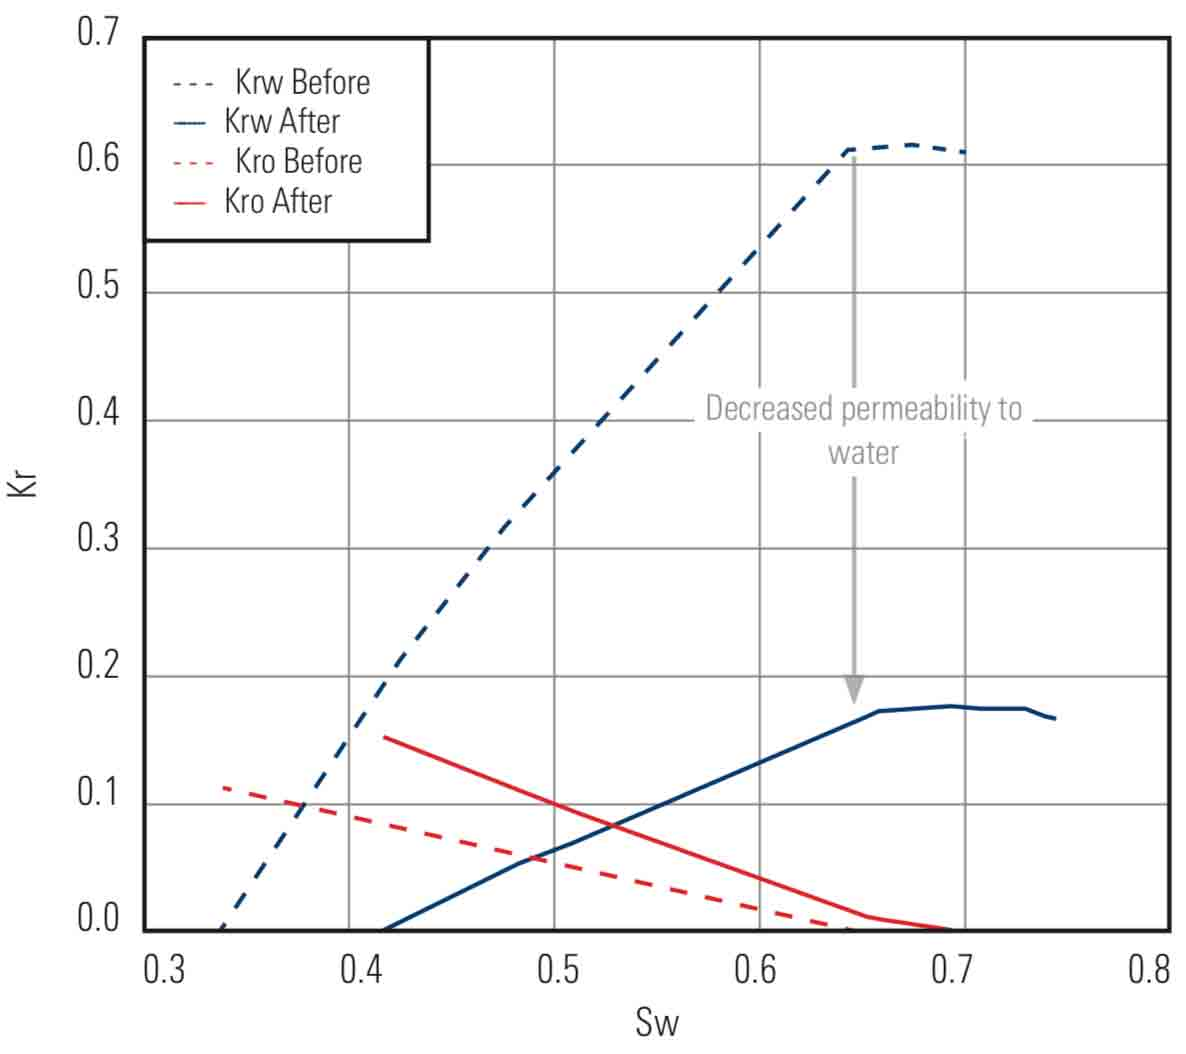 As indicated in this graph, the ZONETROL XT system reduces the relative permeability of the reservoir to water by up to 75% with little if any change in the permeability of the reservoir to oil.